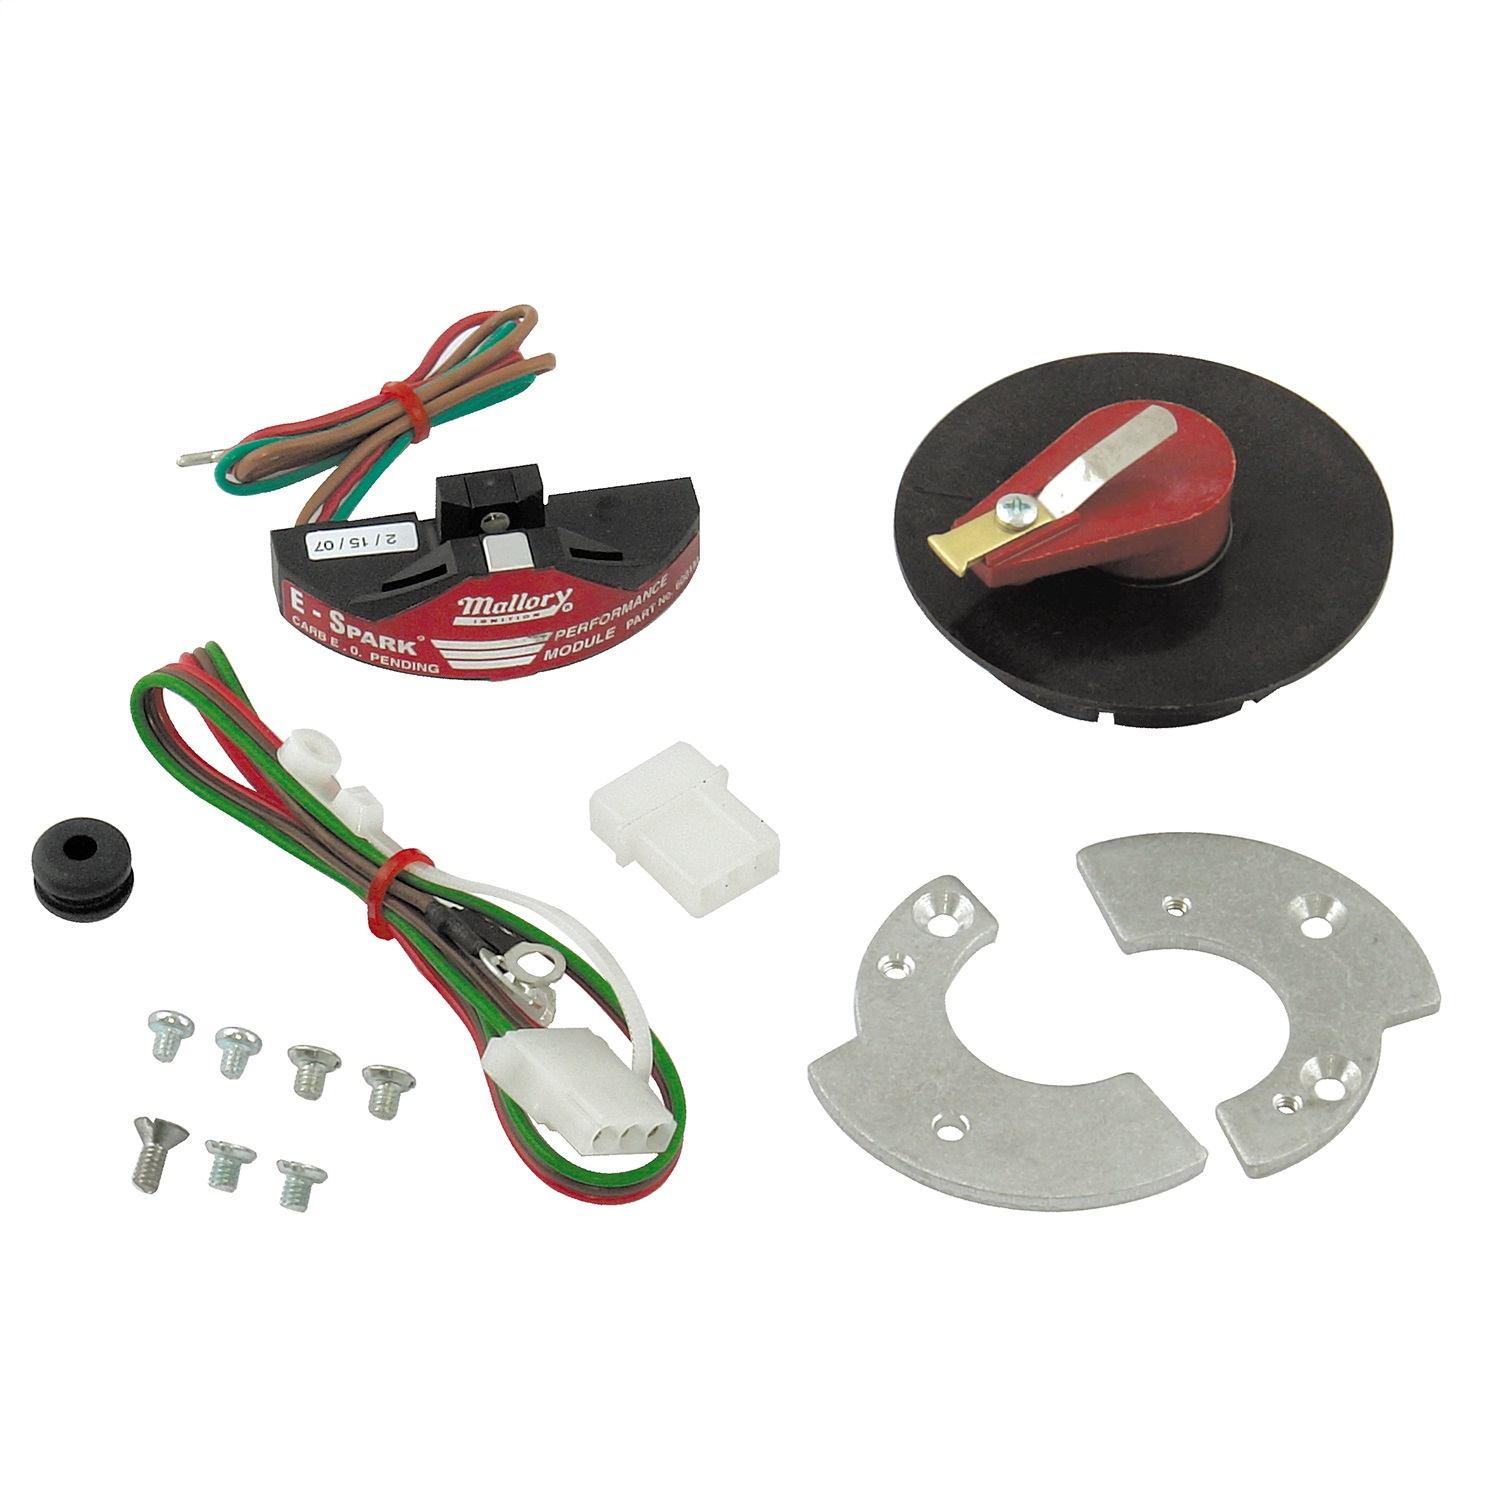 hight resolution of details about mallory 61002m e spark ignition conversion kit